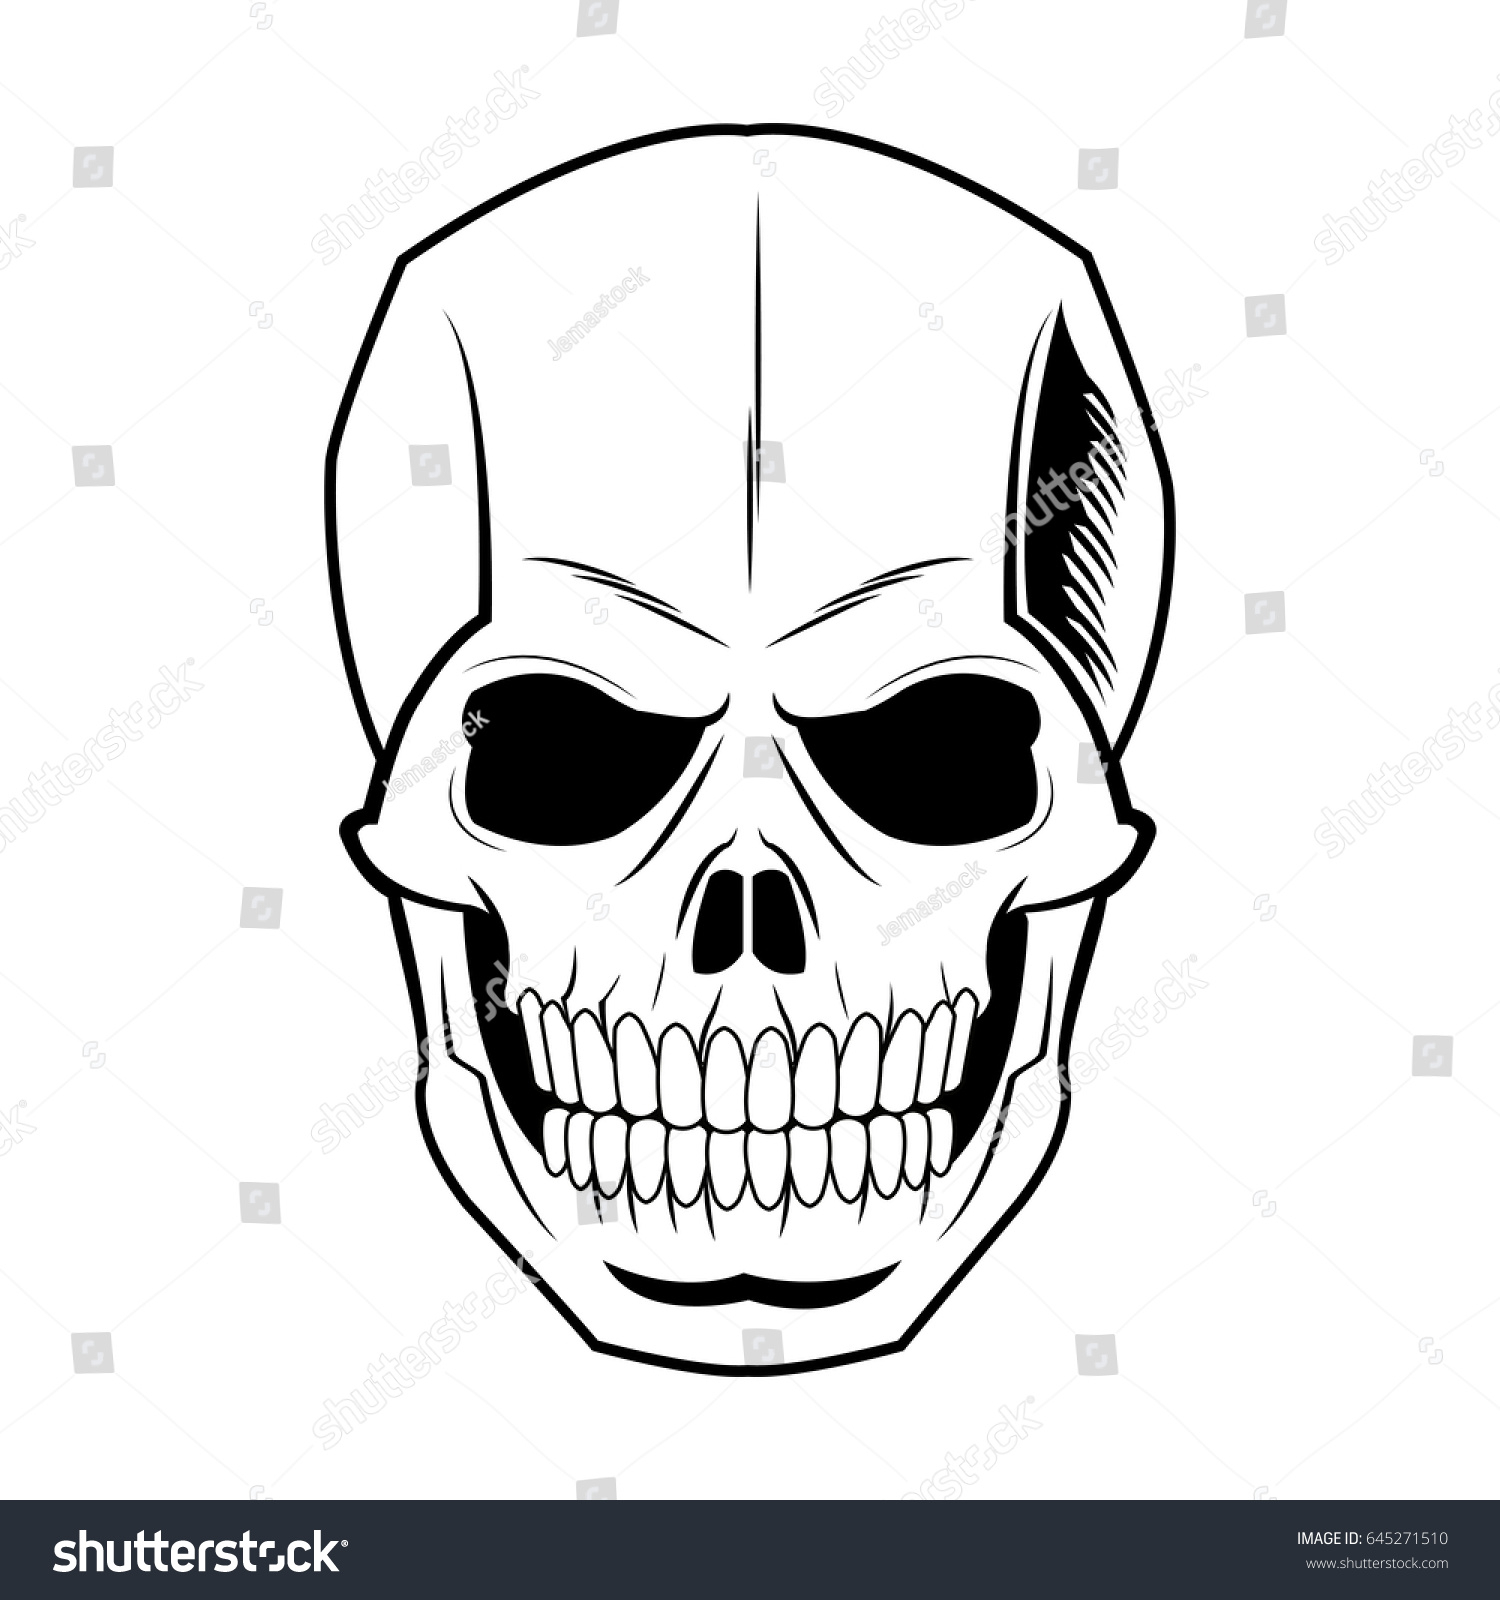 1500x1600 Head Skeleton Drawing Skeleton Human Head Vintage Bone Stock